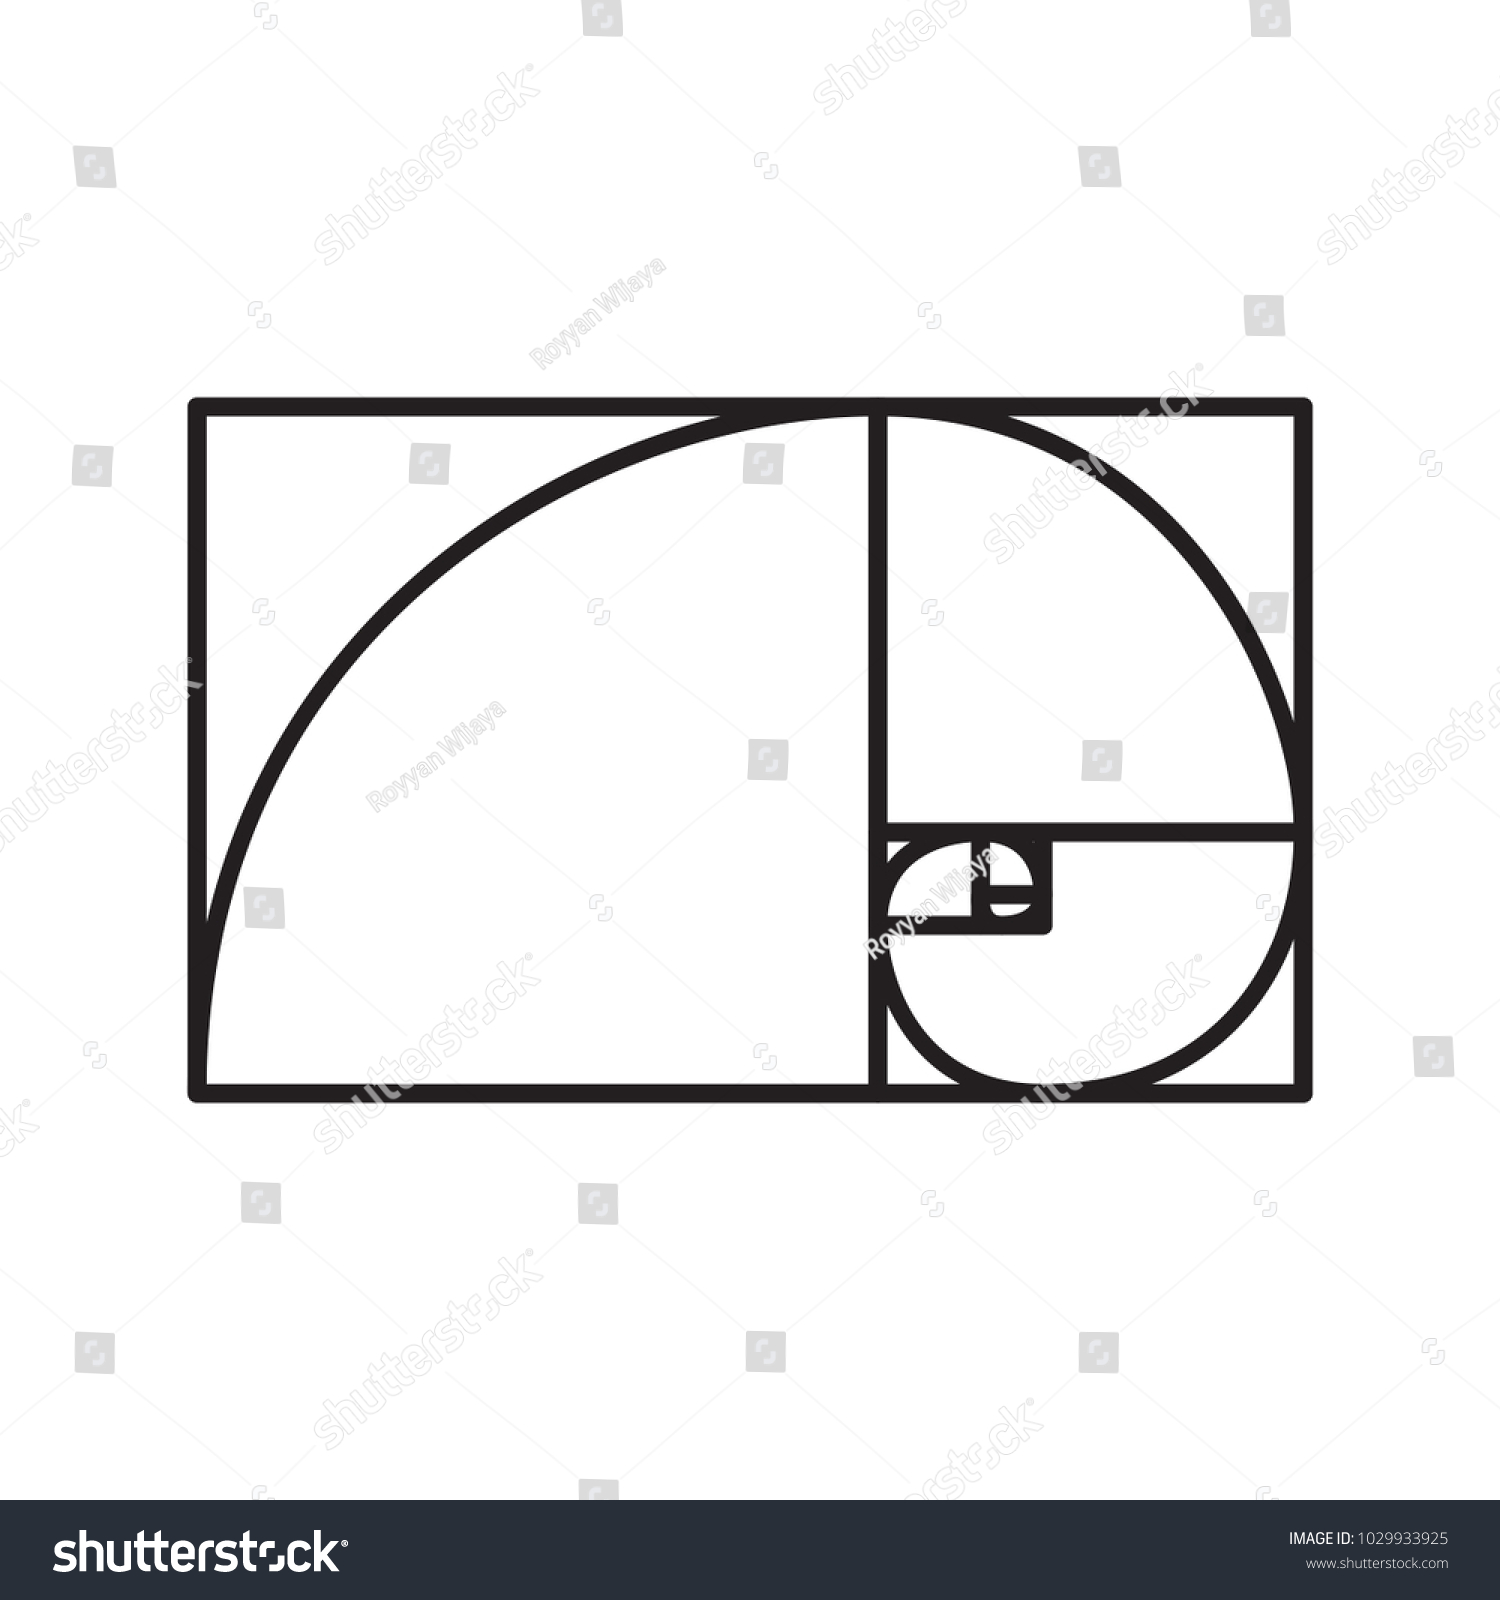 golden ratio icon vector isolated suitable stock vector 1029933925 rh shutterstock com golden ratio vector illustrator golden ratio vector circles